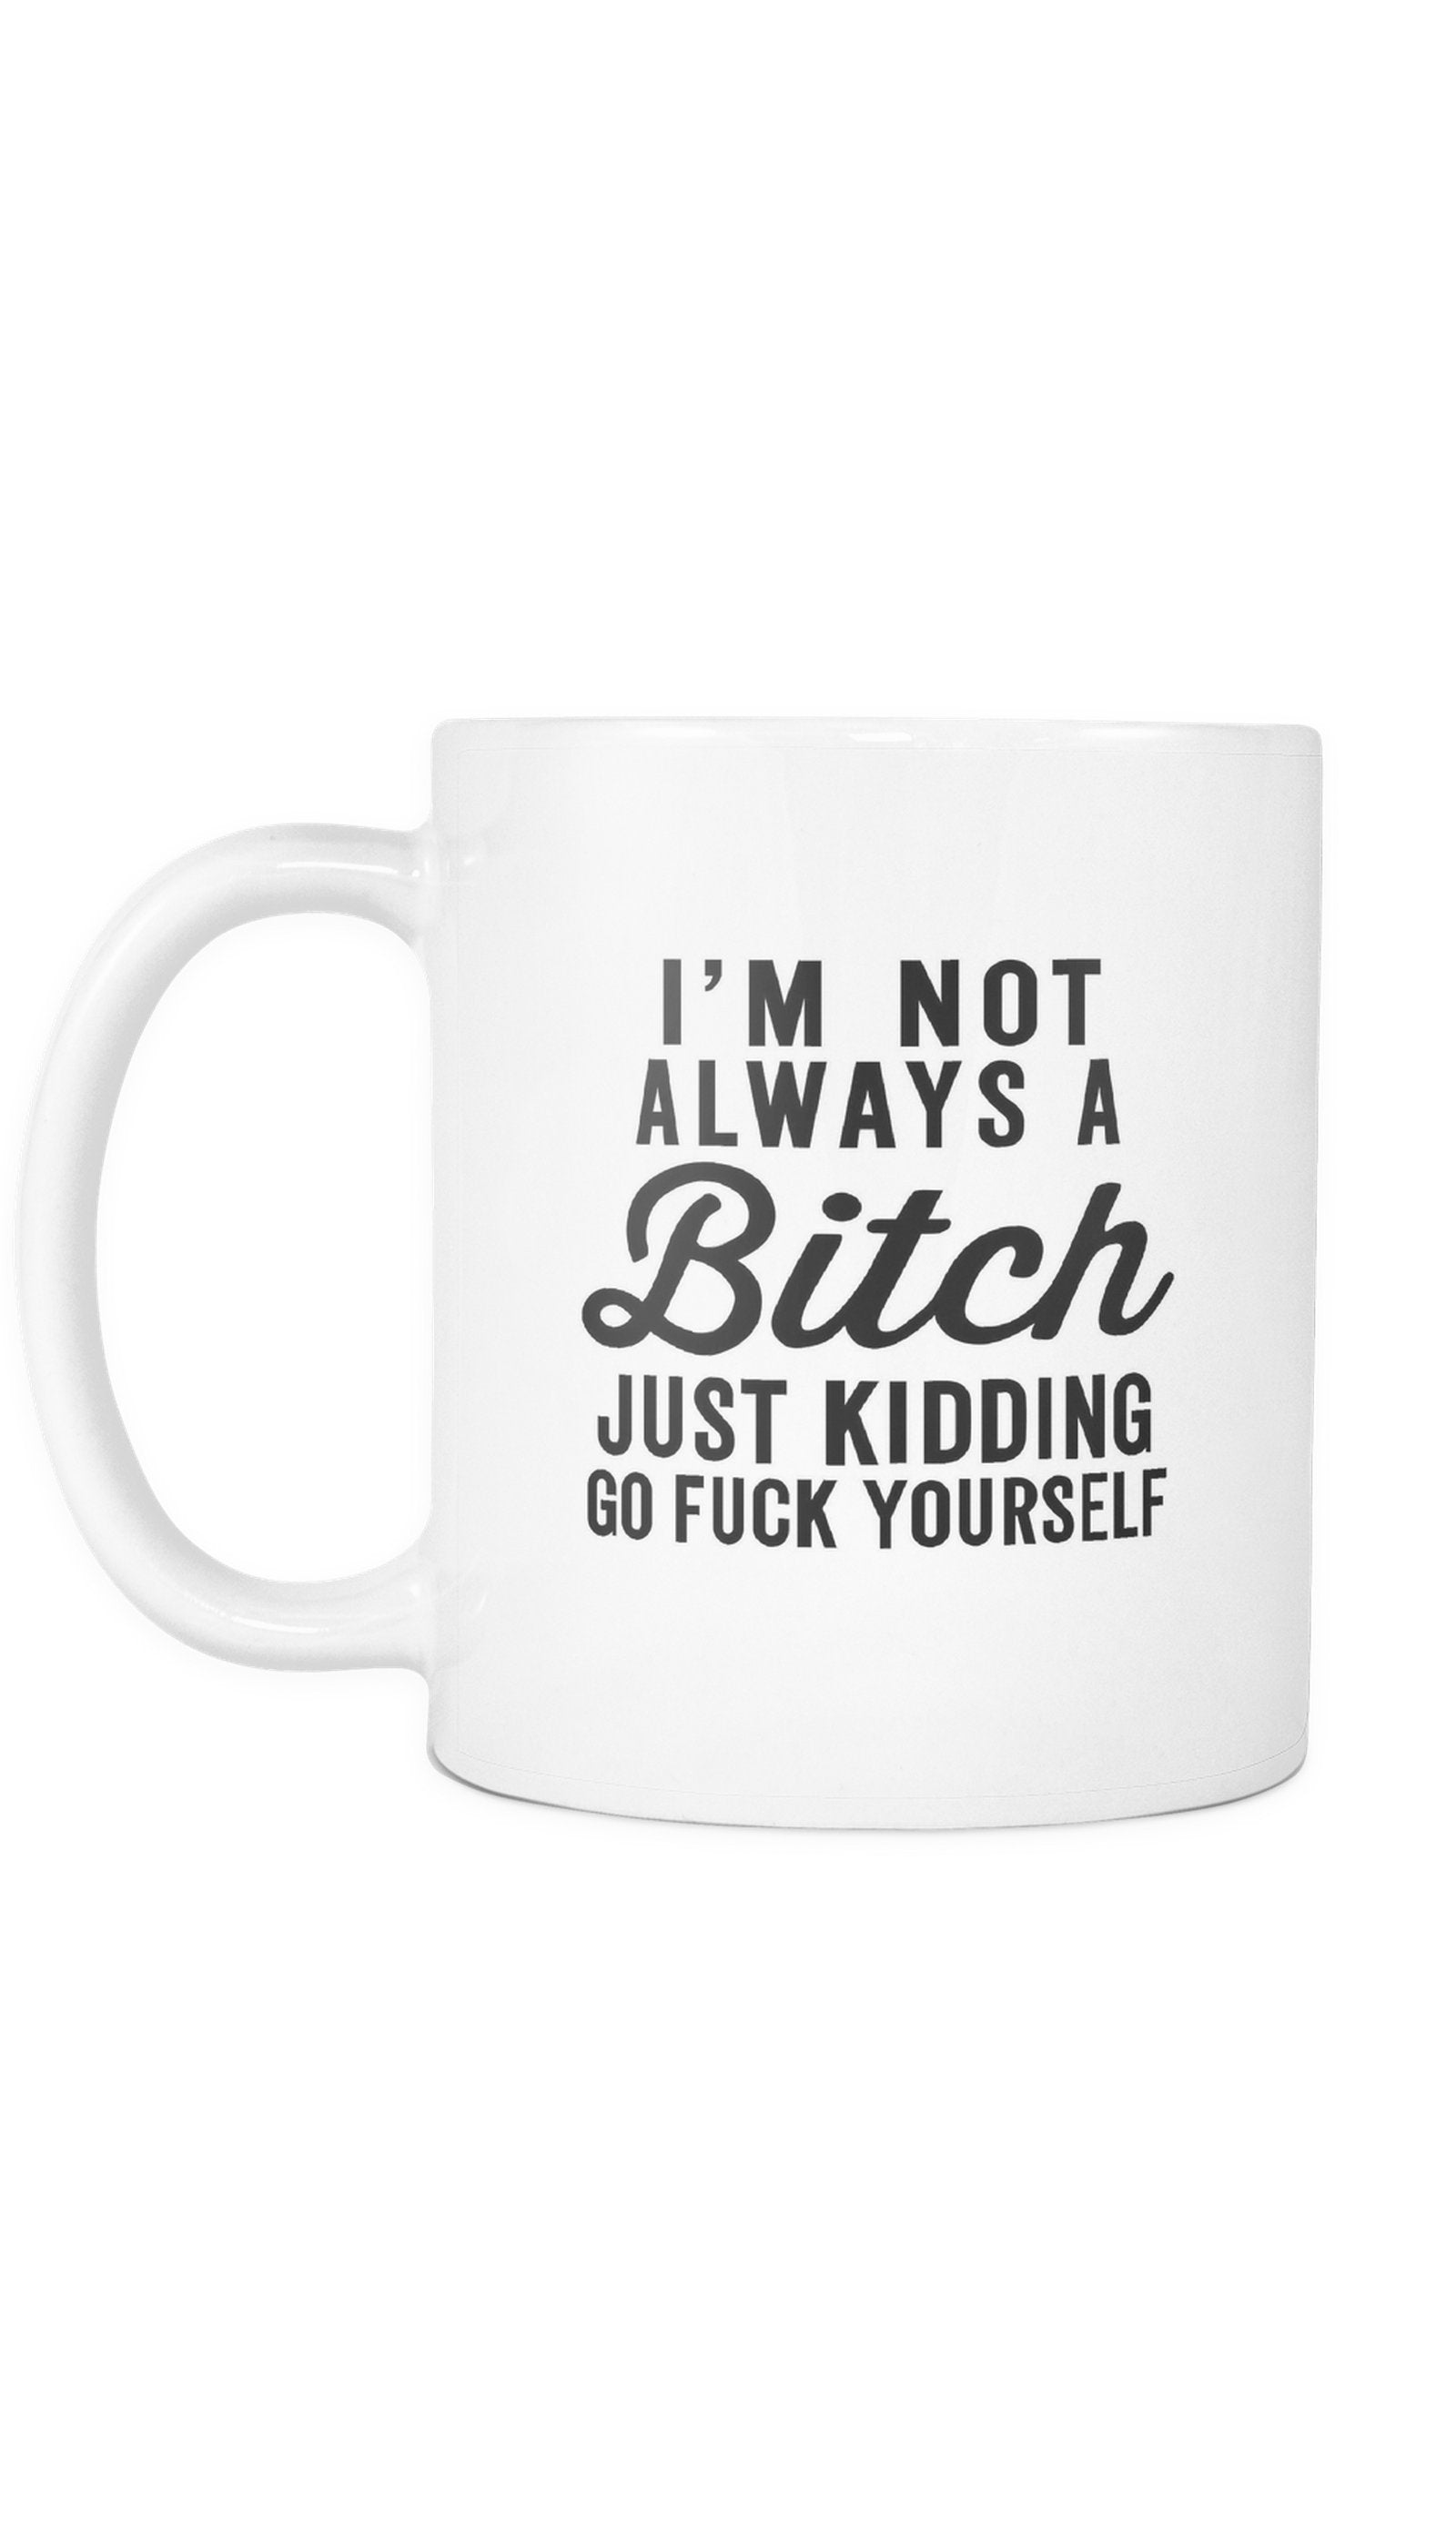 I'm Not Always A Bitch Just Kidding Go F*ck Yourself White Mug | Sarcastic Me